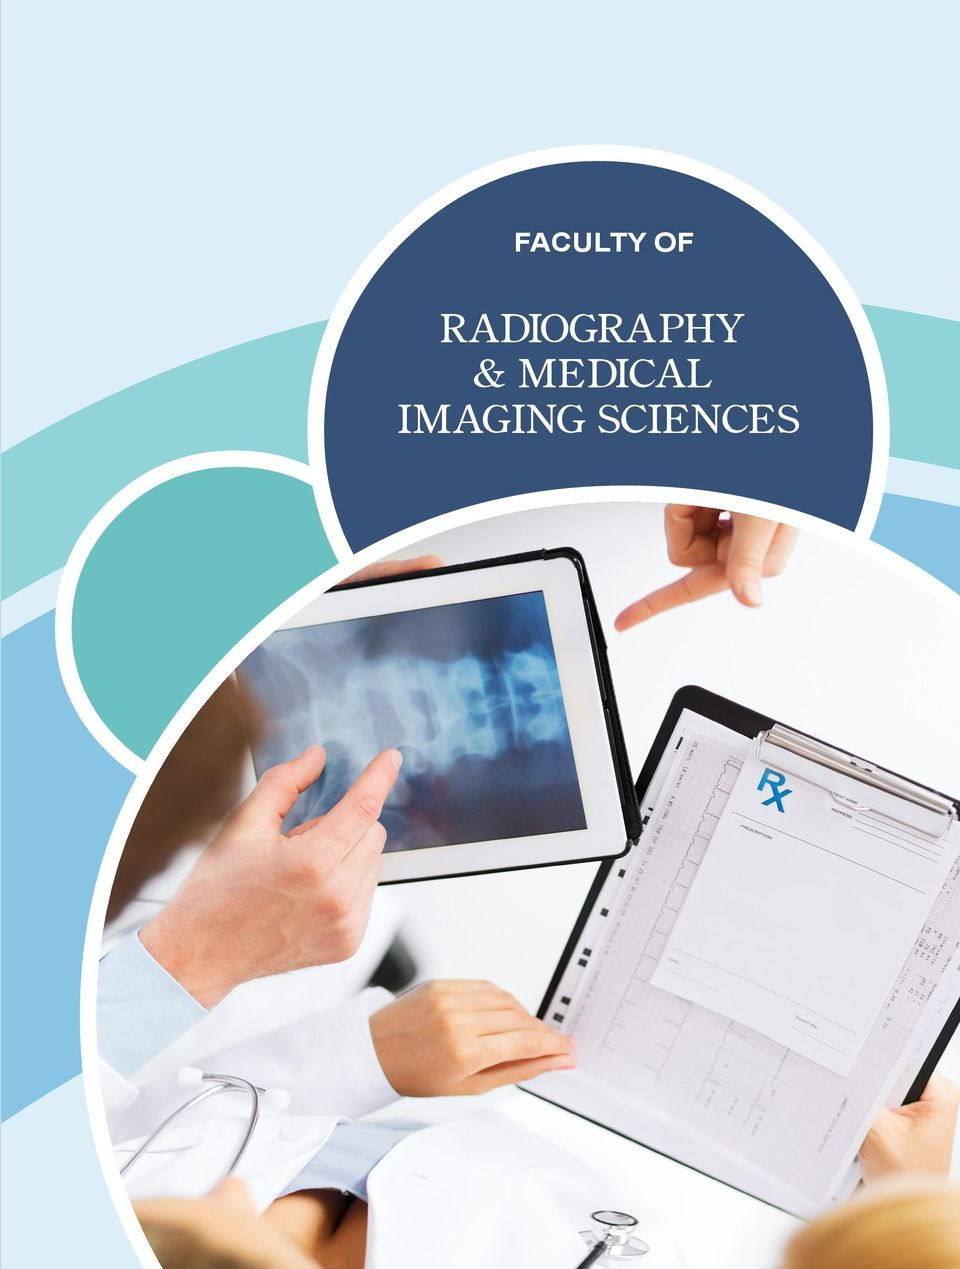 RADIOGRAPHY & MEDICAL IMAGING SCIENCES